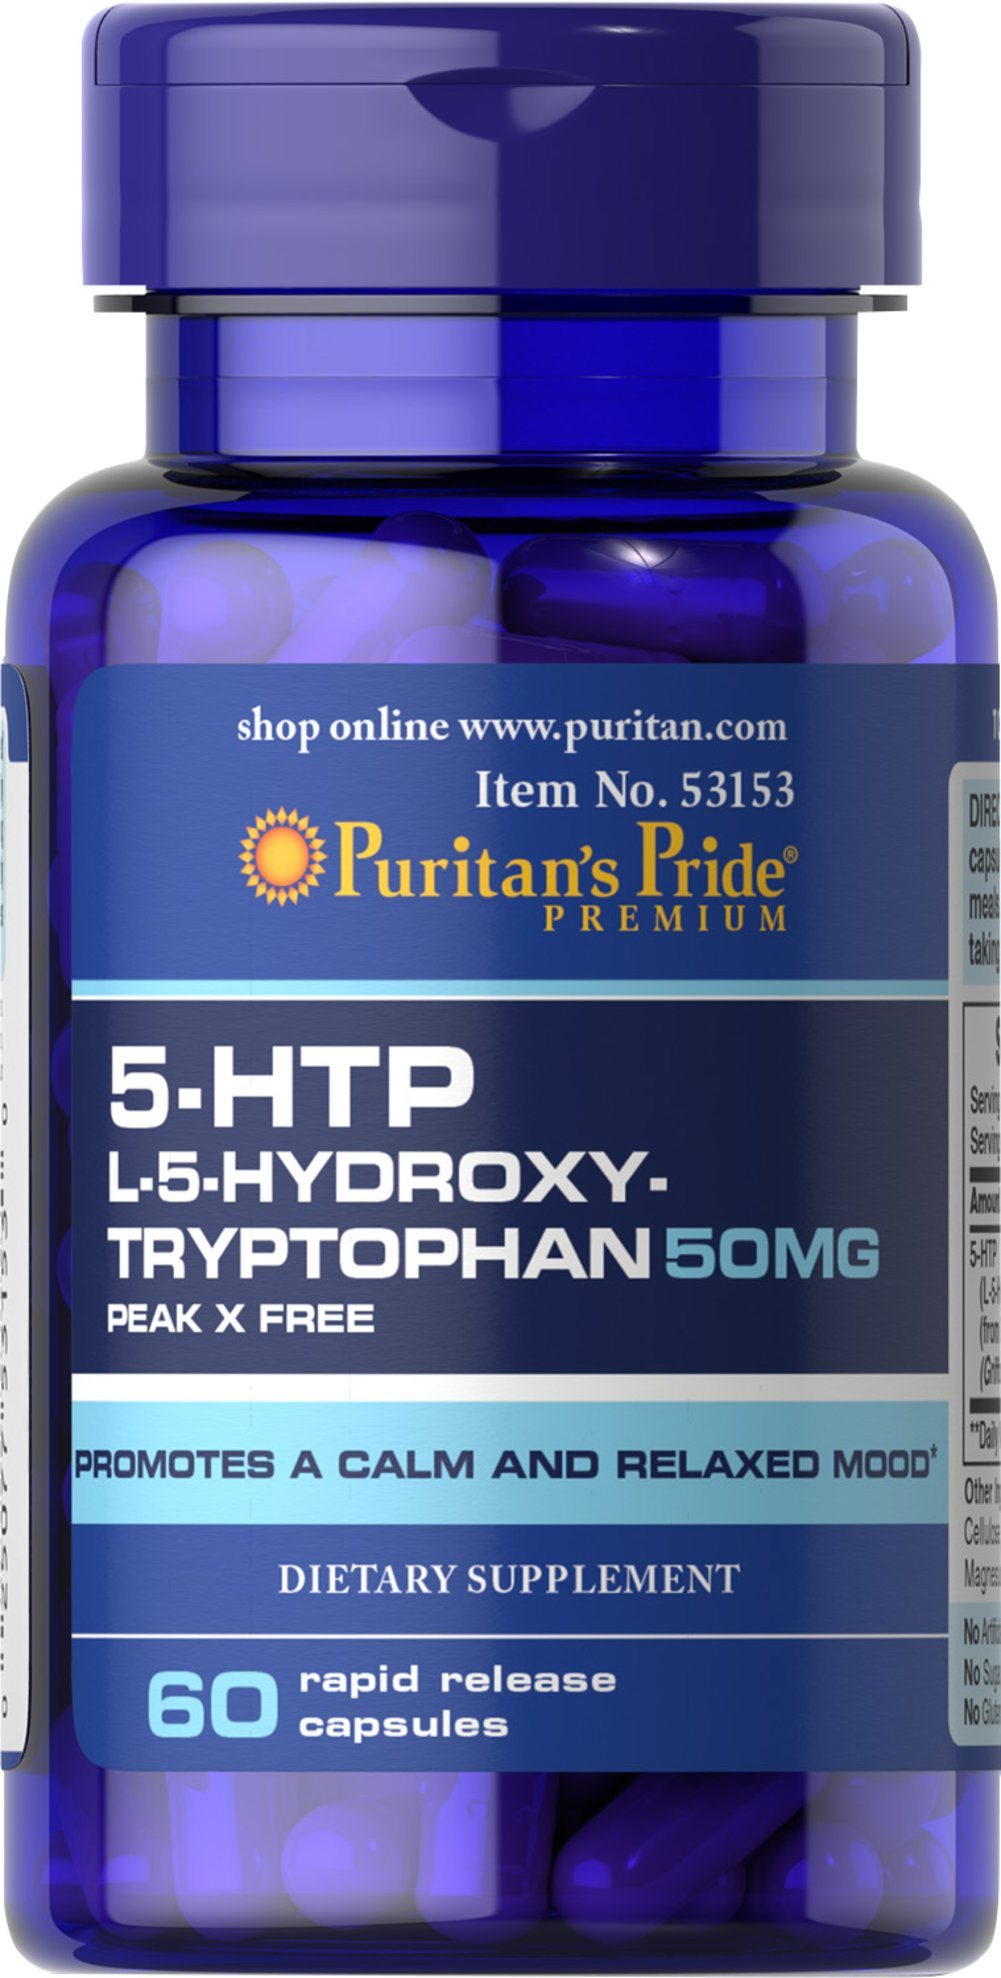 5-HTP 50 mg (Griffonia Simplicifolia) Thumbnail Alternate Bottle View